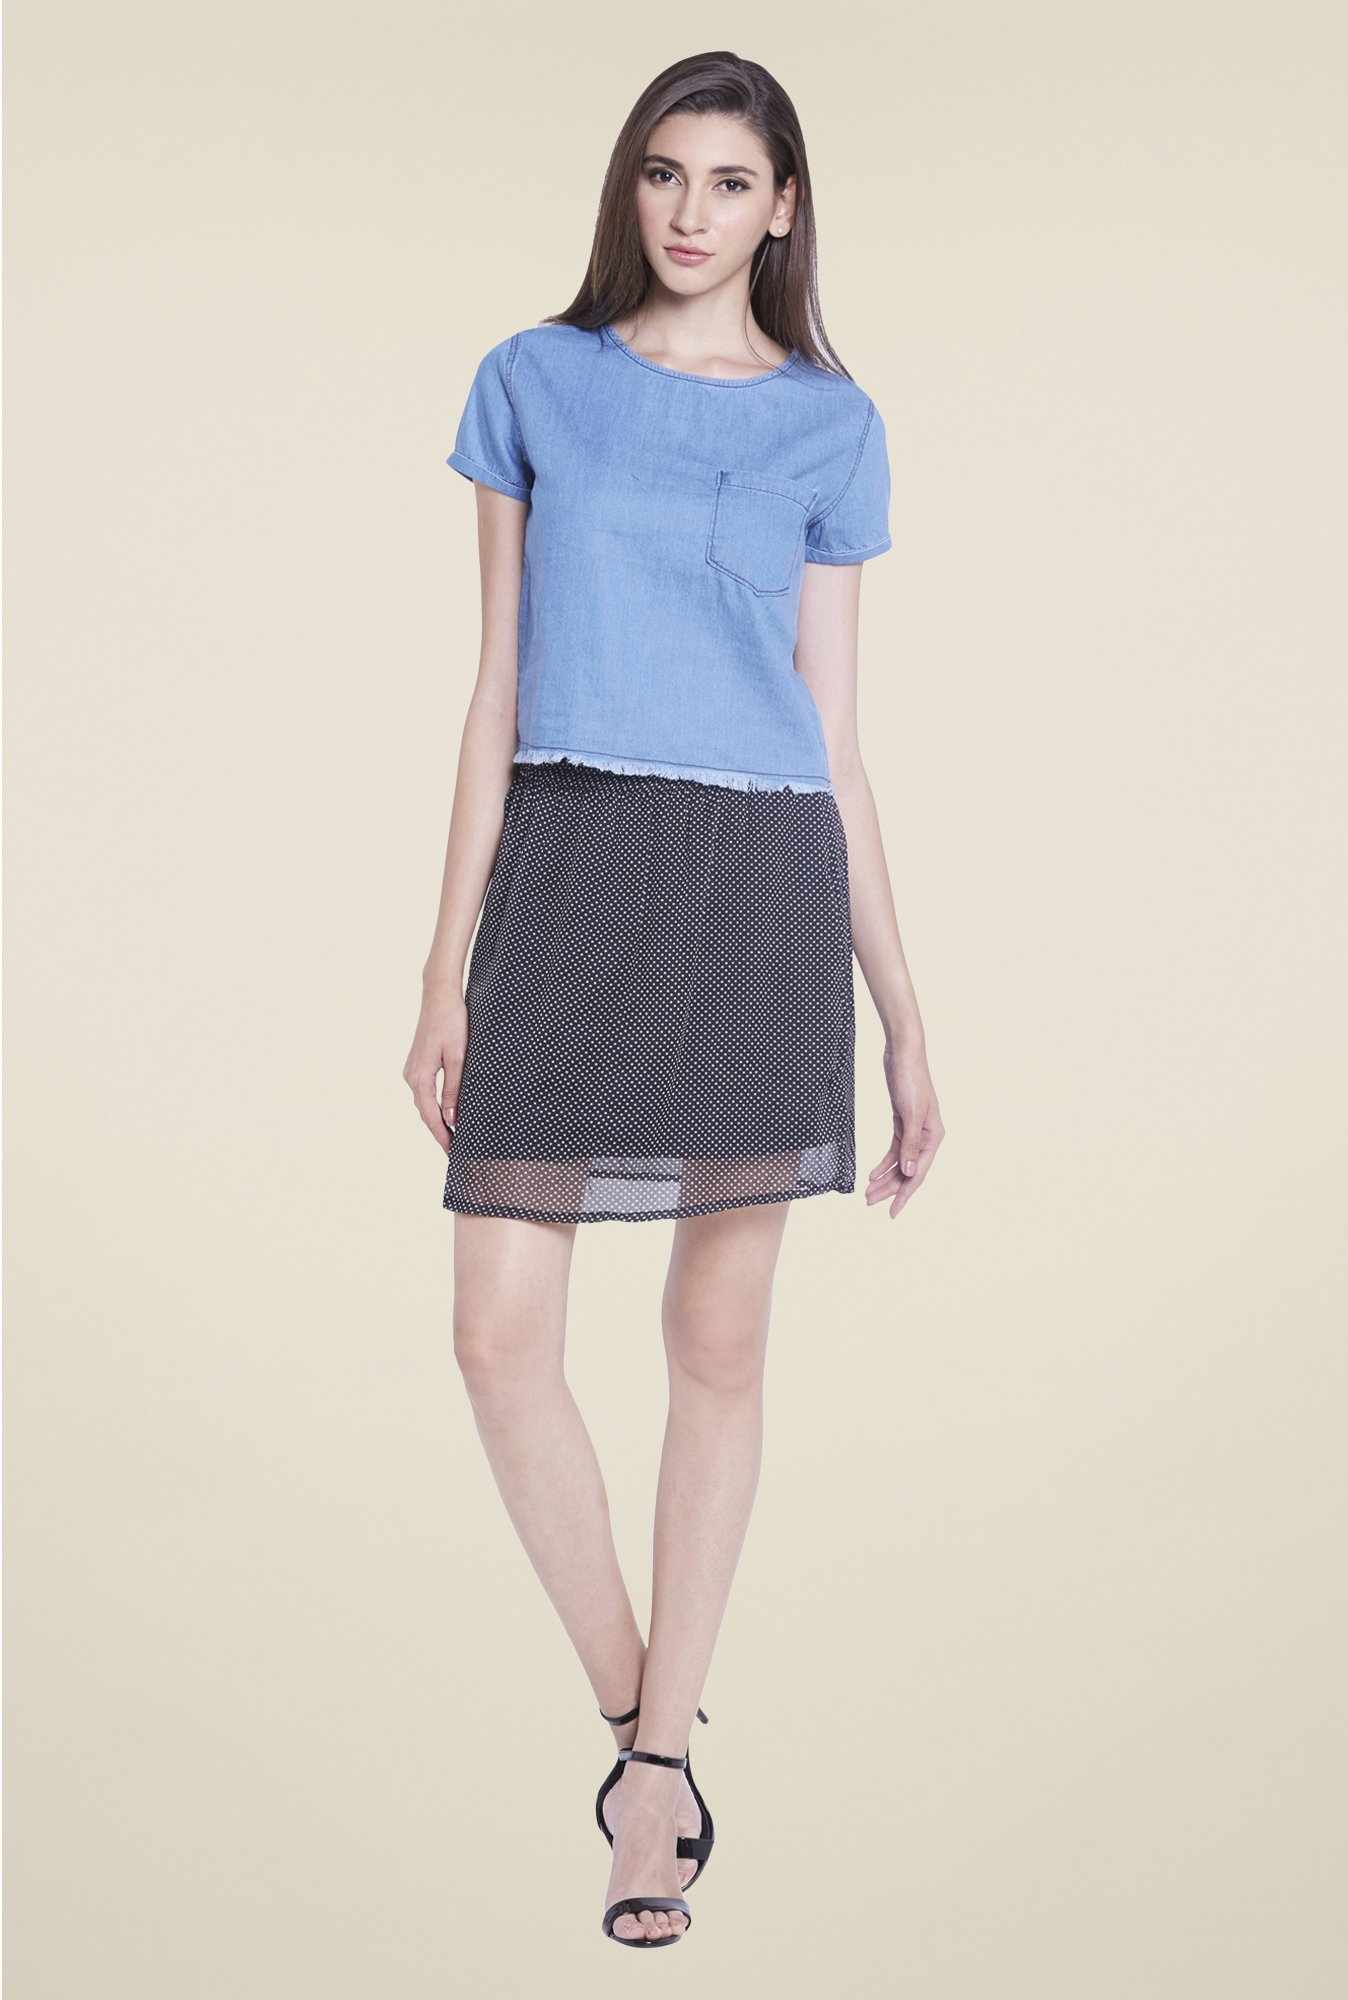 Globus Blue Solid Short Sleeve Top